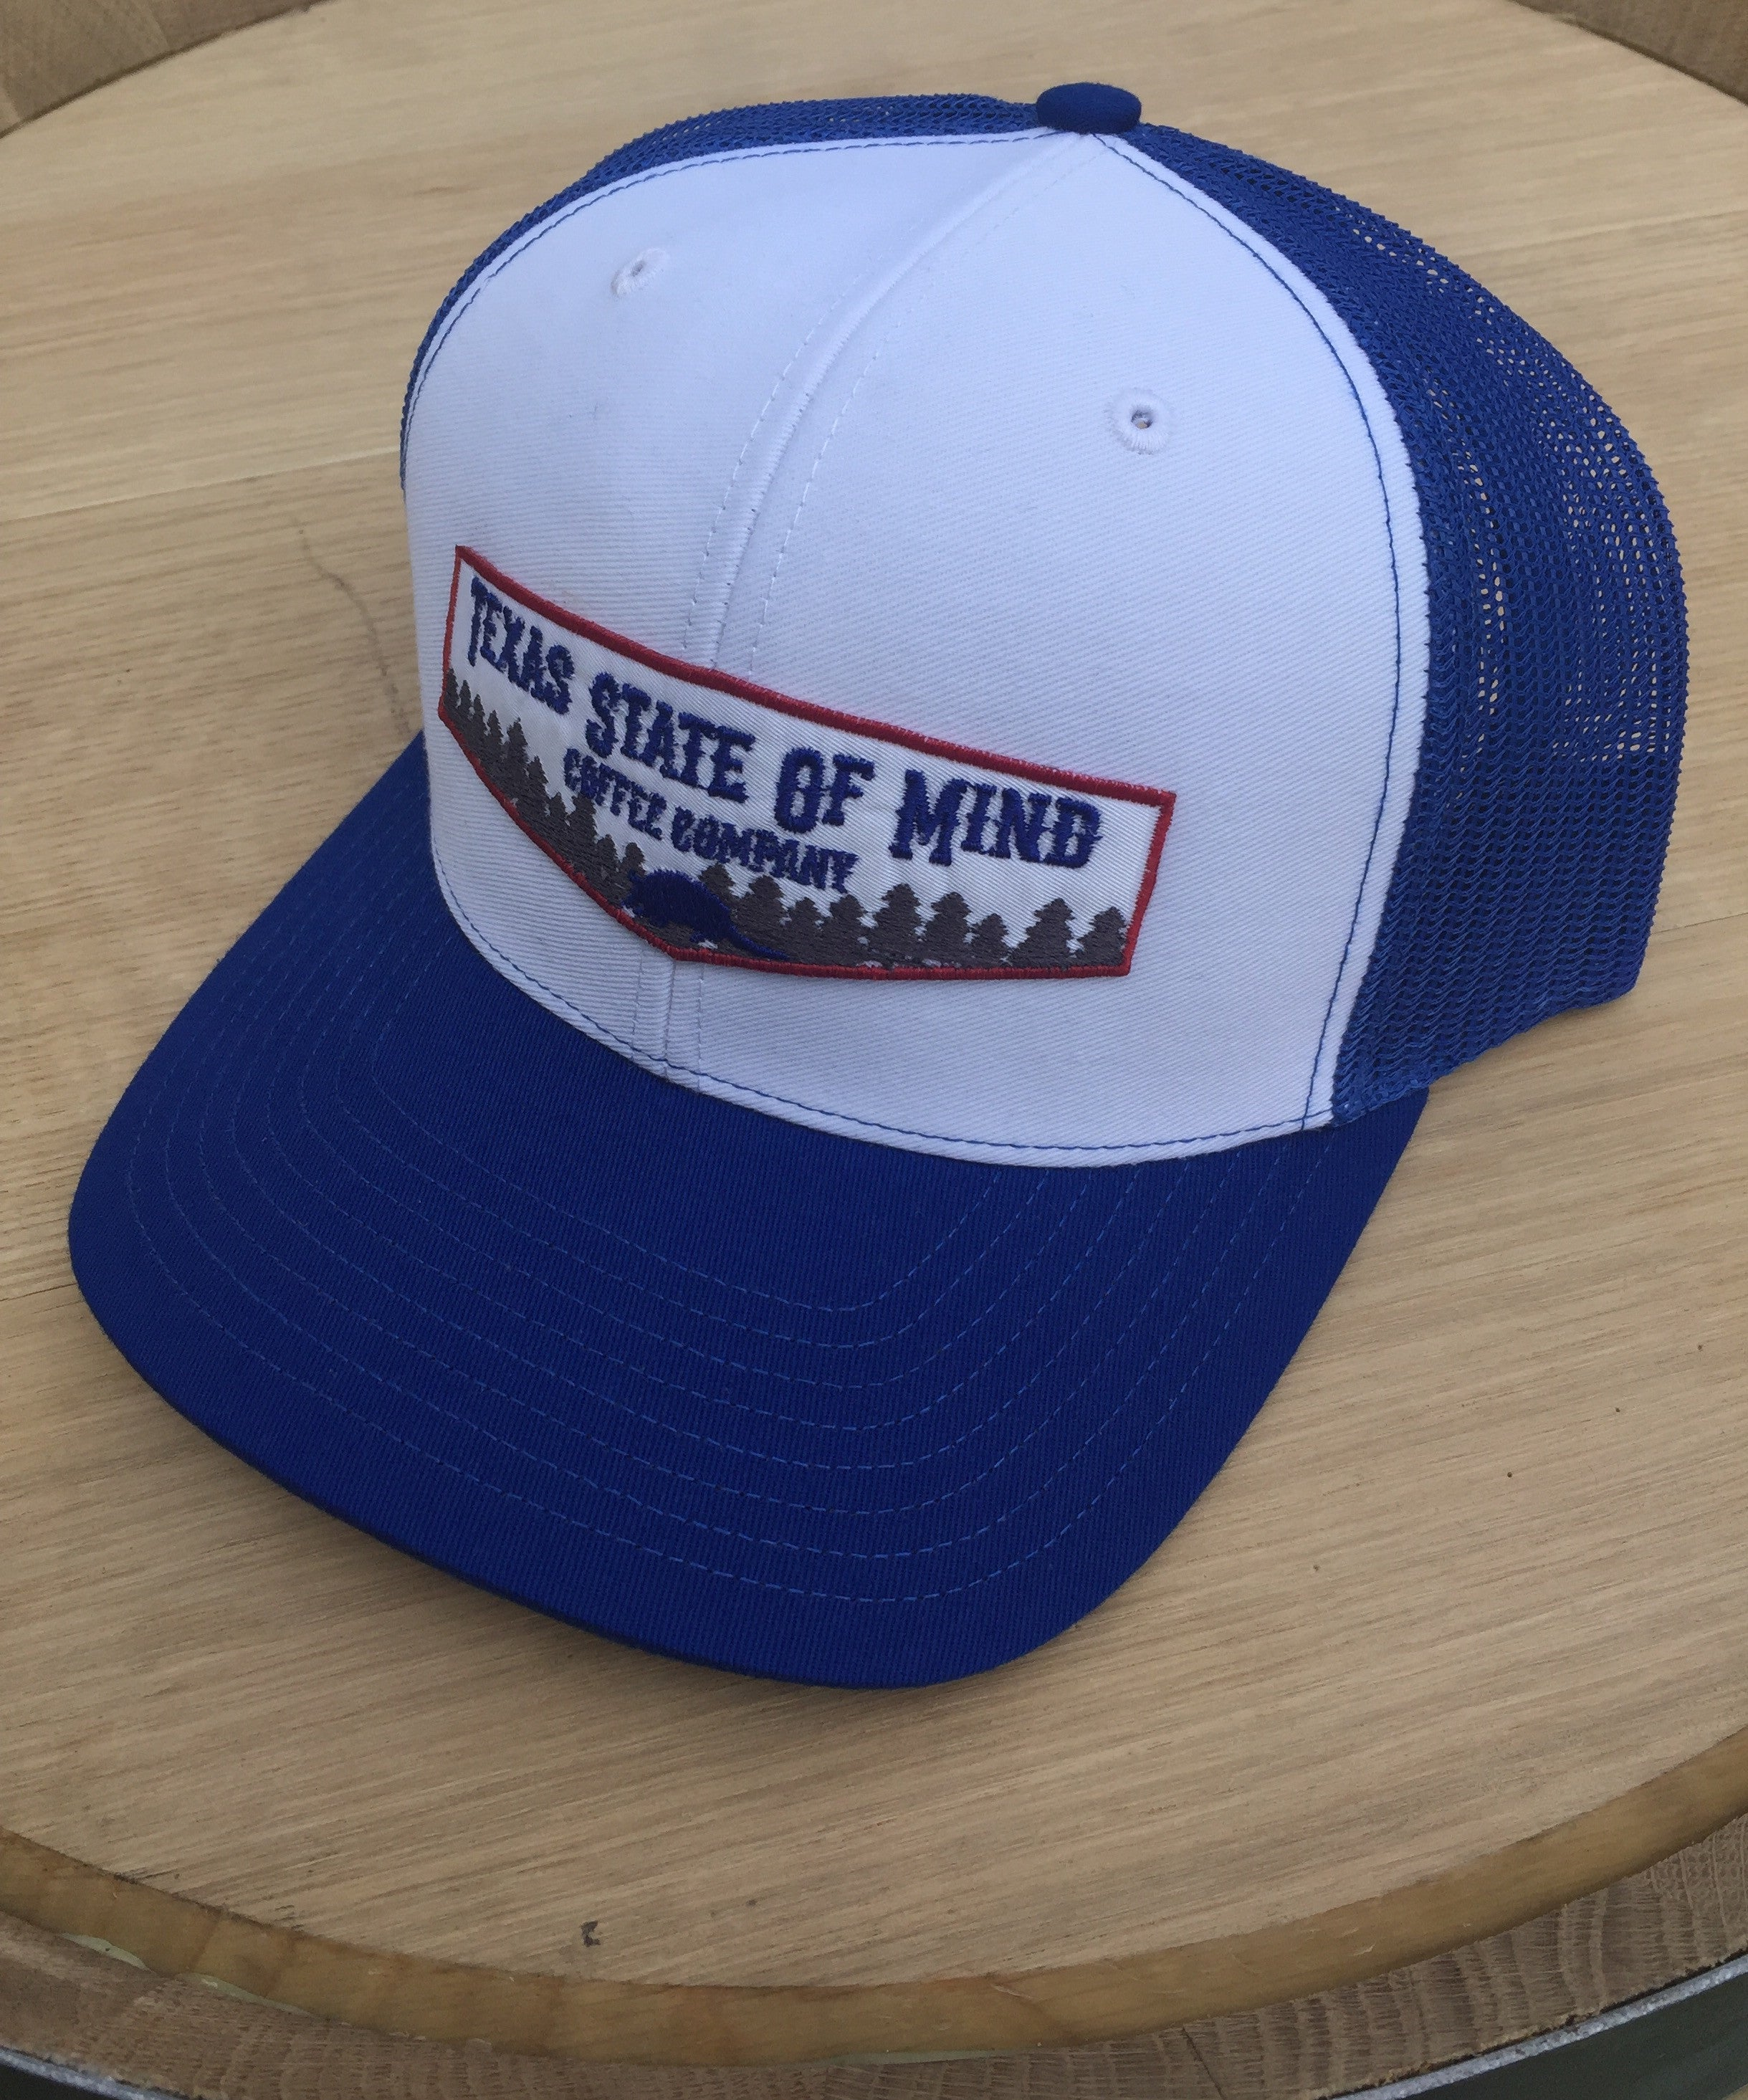 Texas State of Mind Trucker Hat